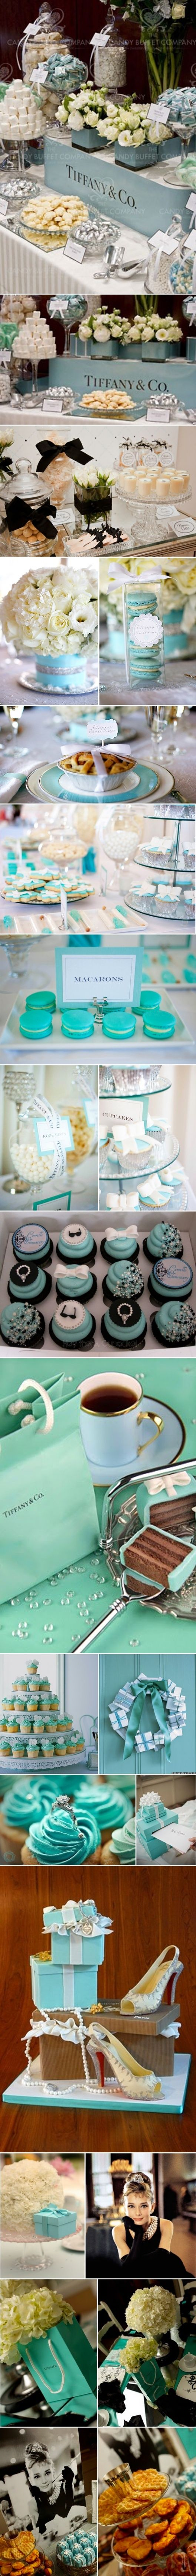 Breakfast at Tiffany's theme bridal shower <3